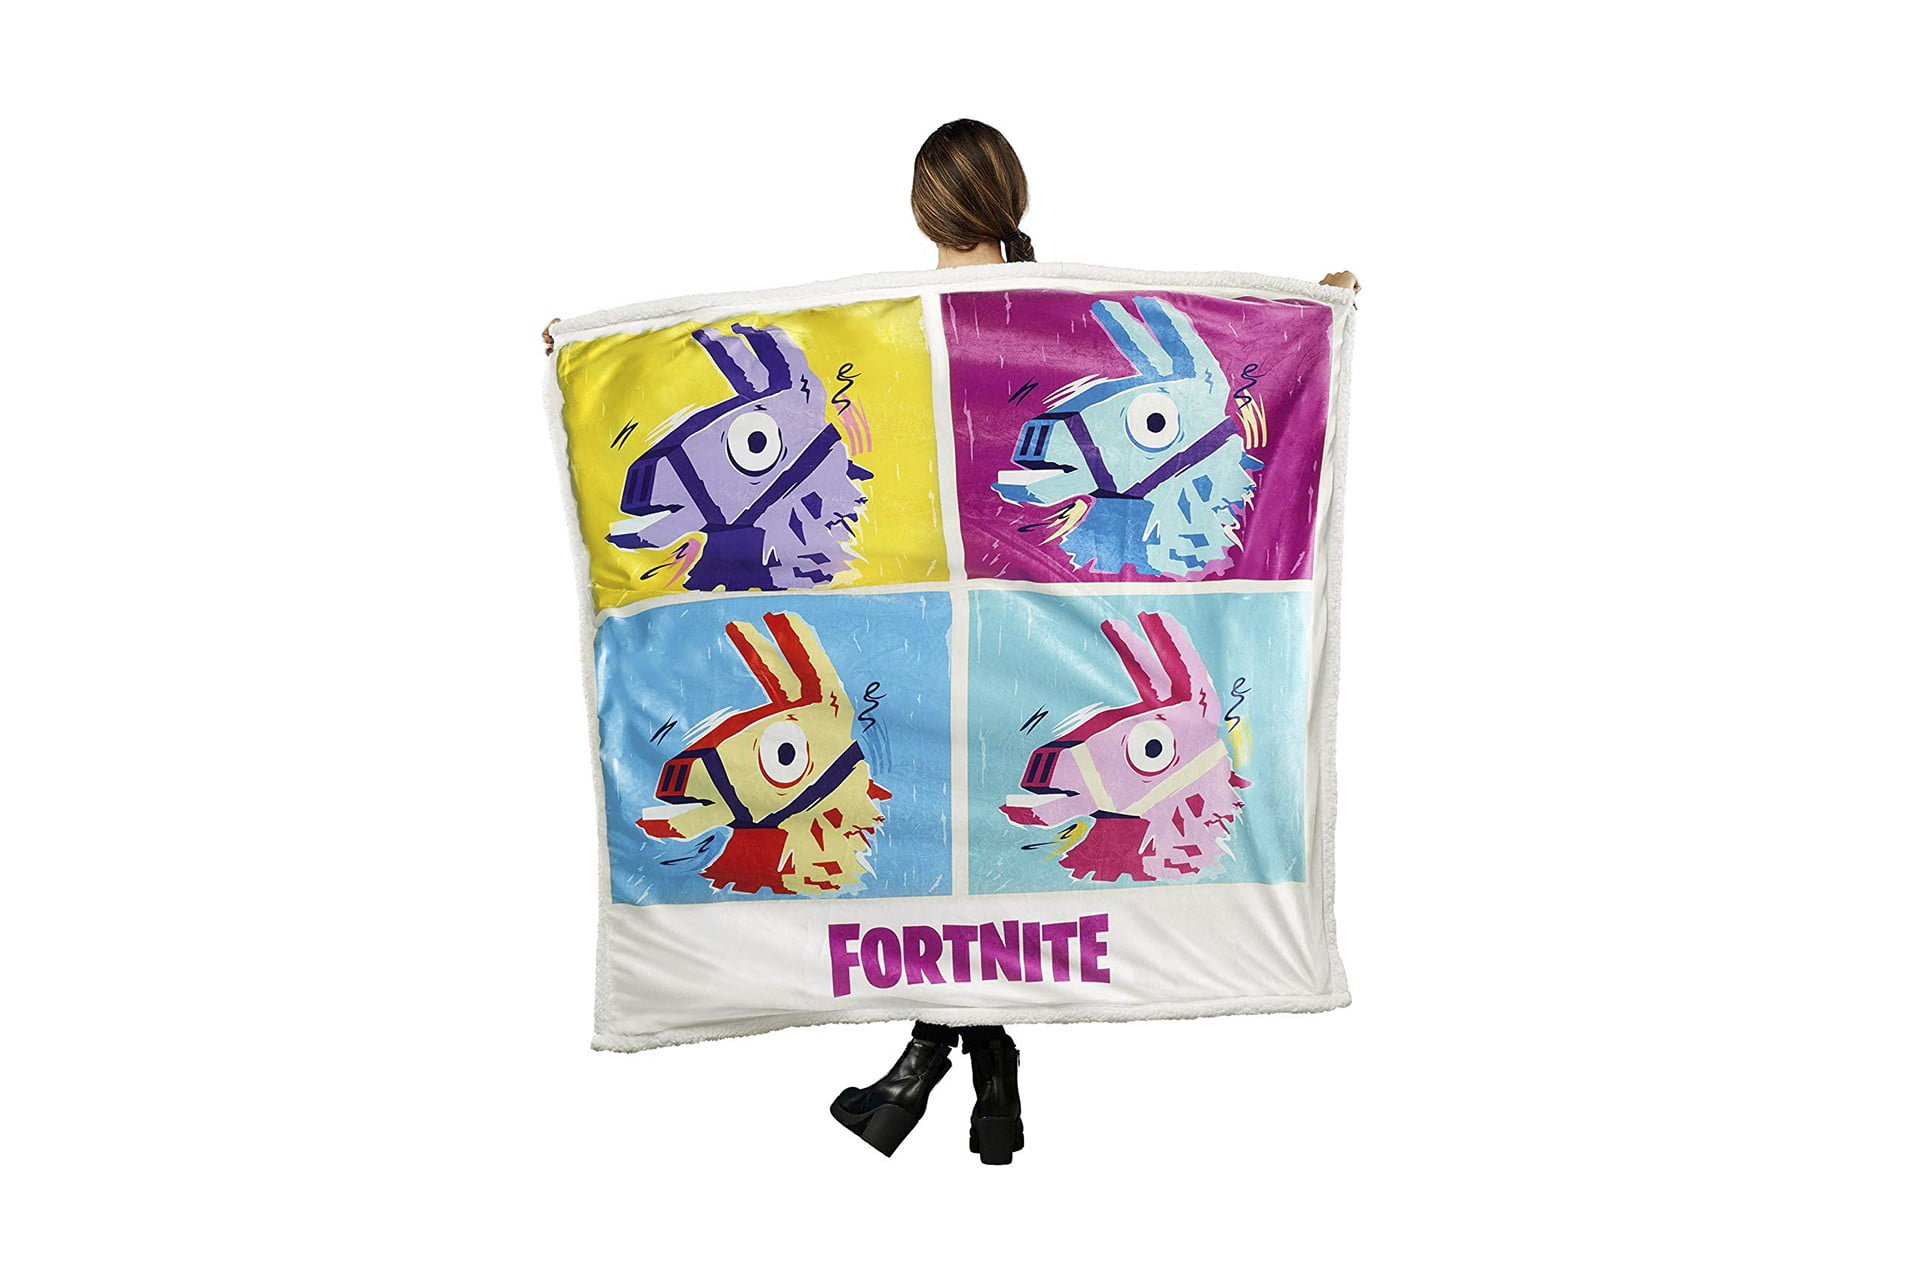 Fortnite' Gifts Perfect for the Video Game Fans in Your Life